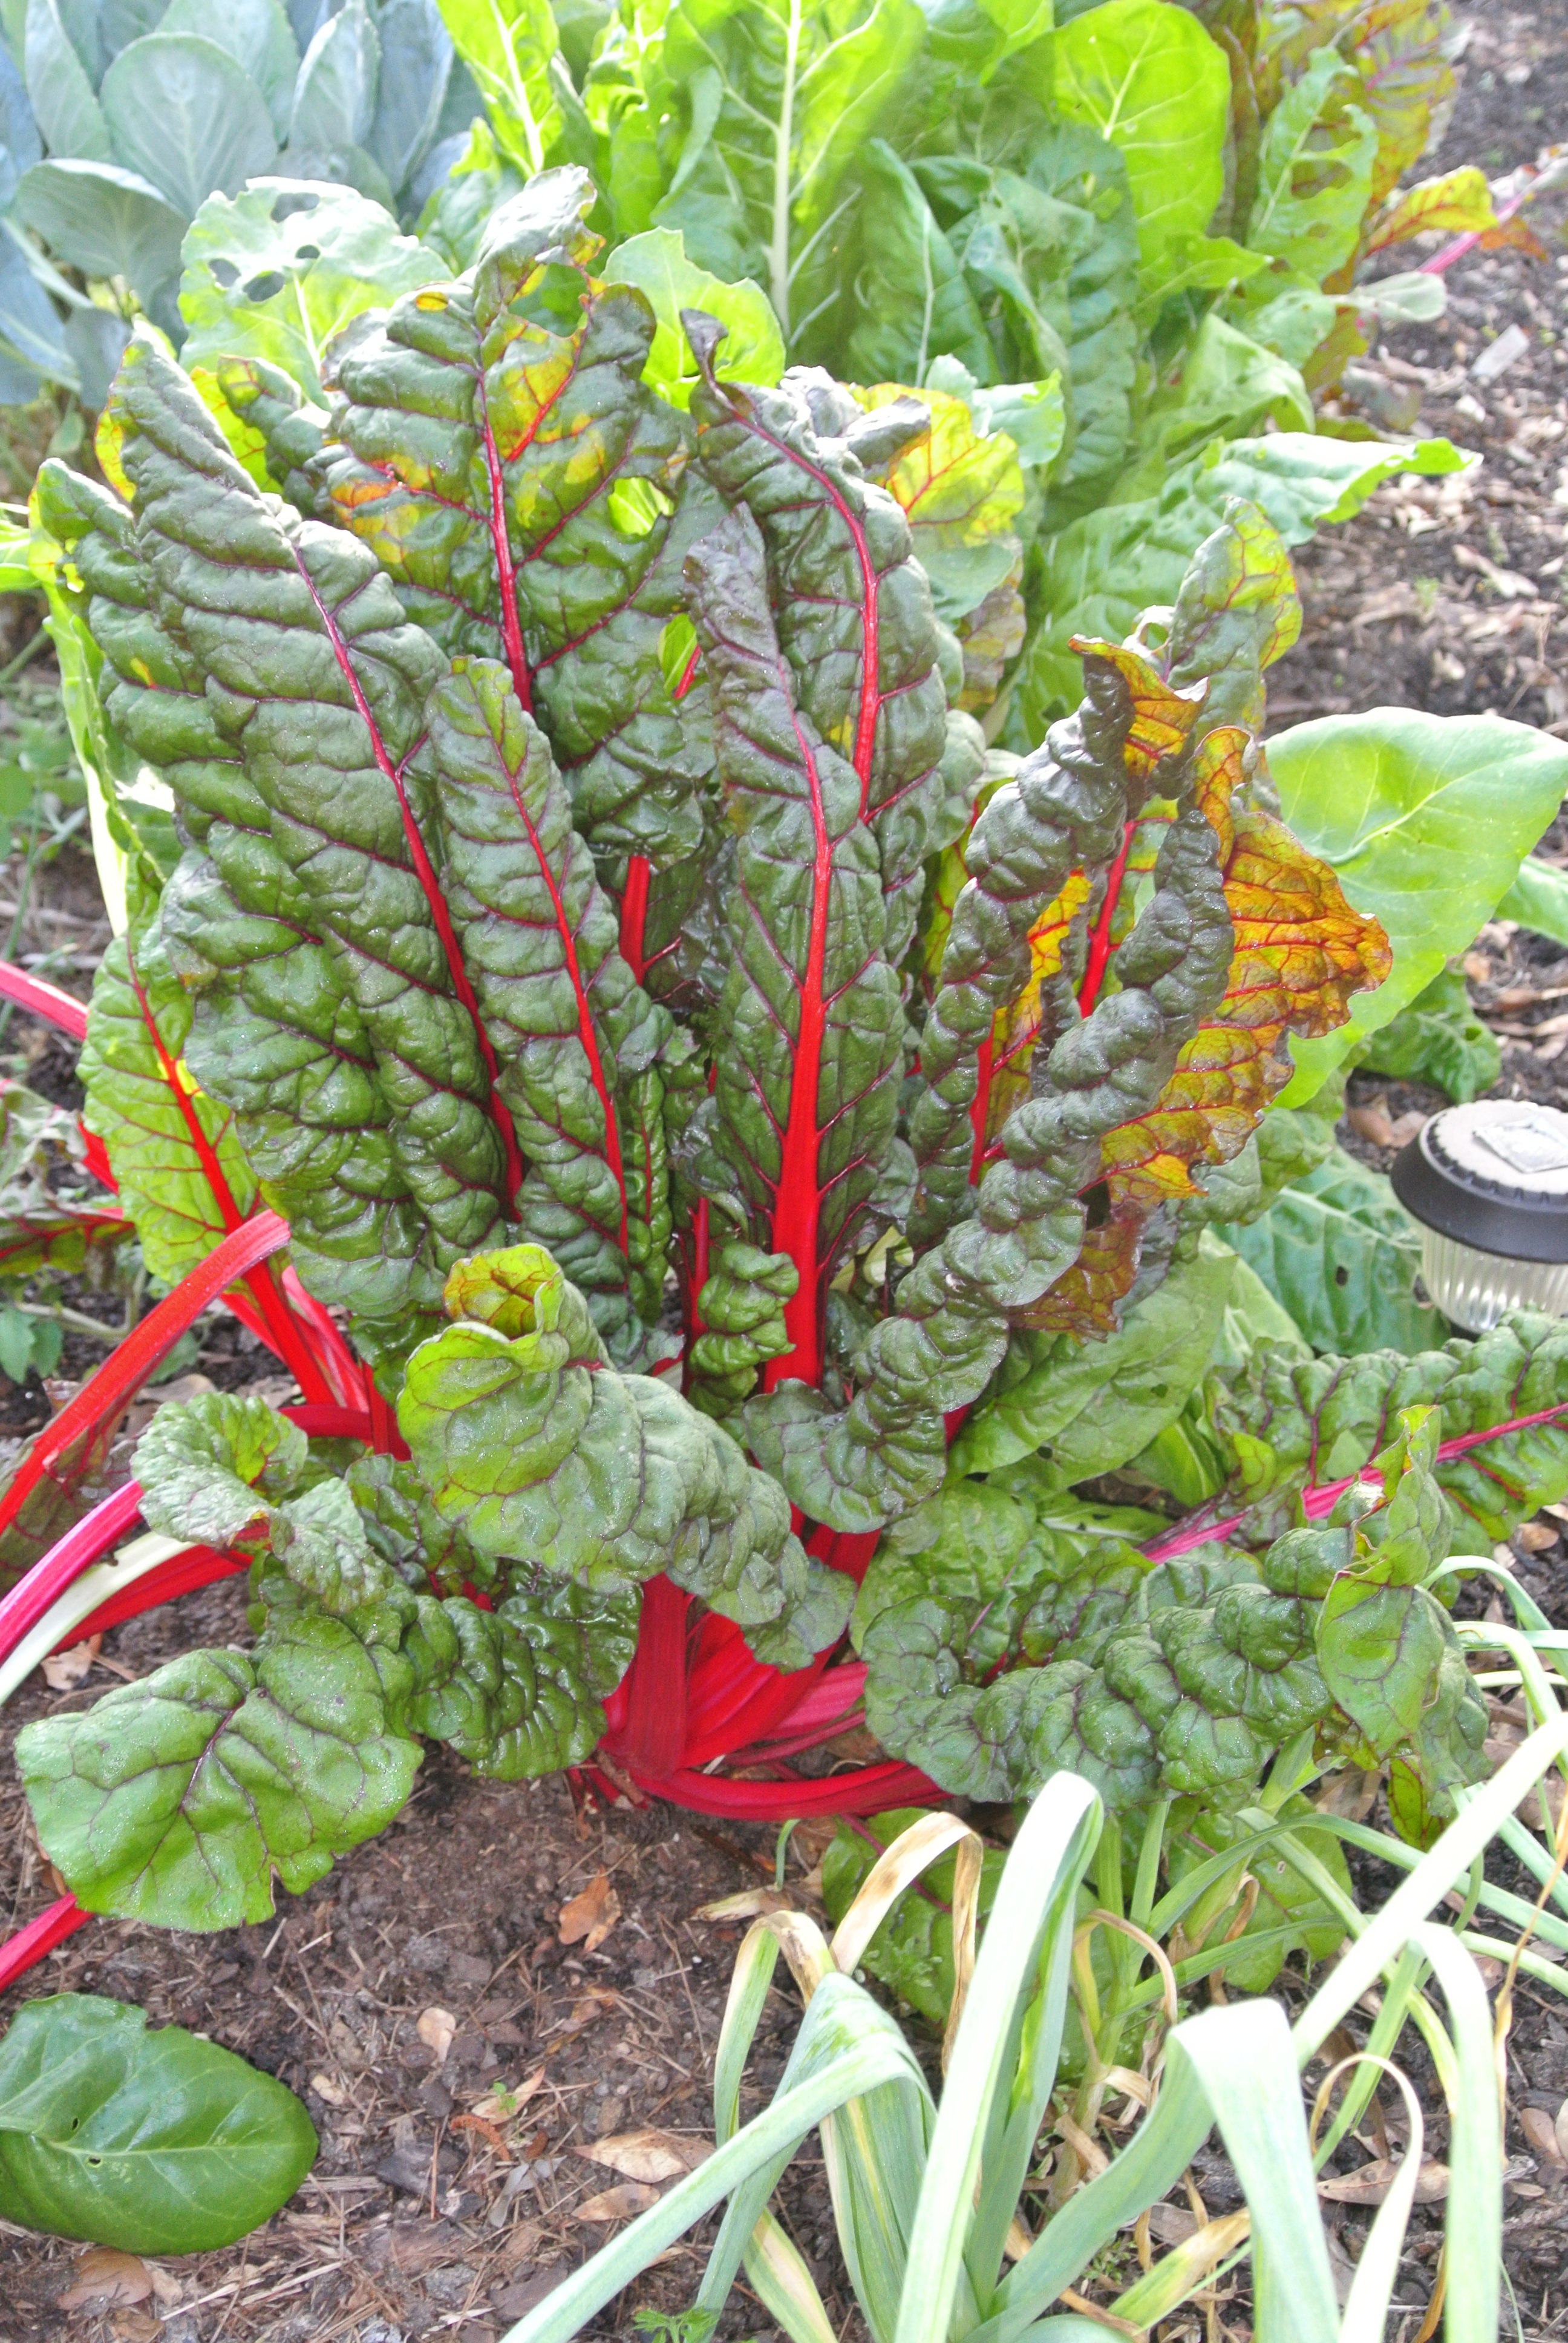 Some of my Swiss Chard